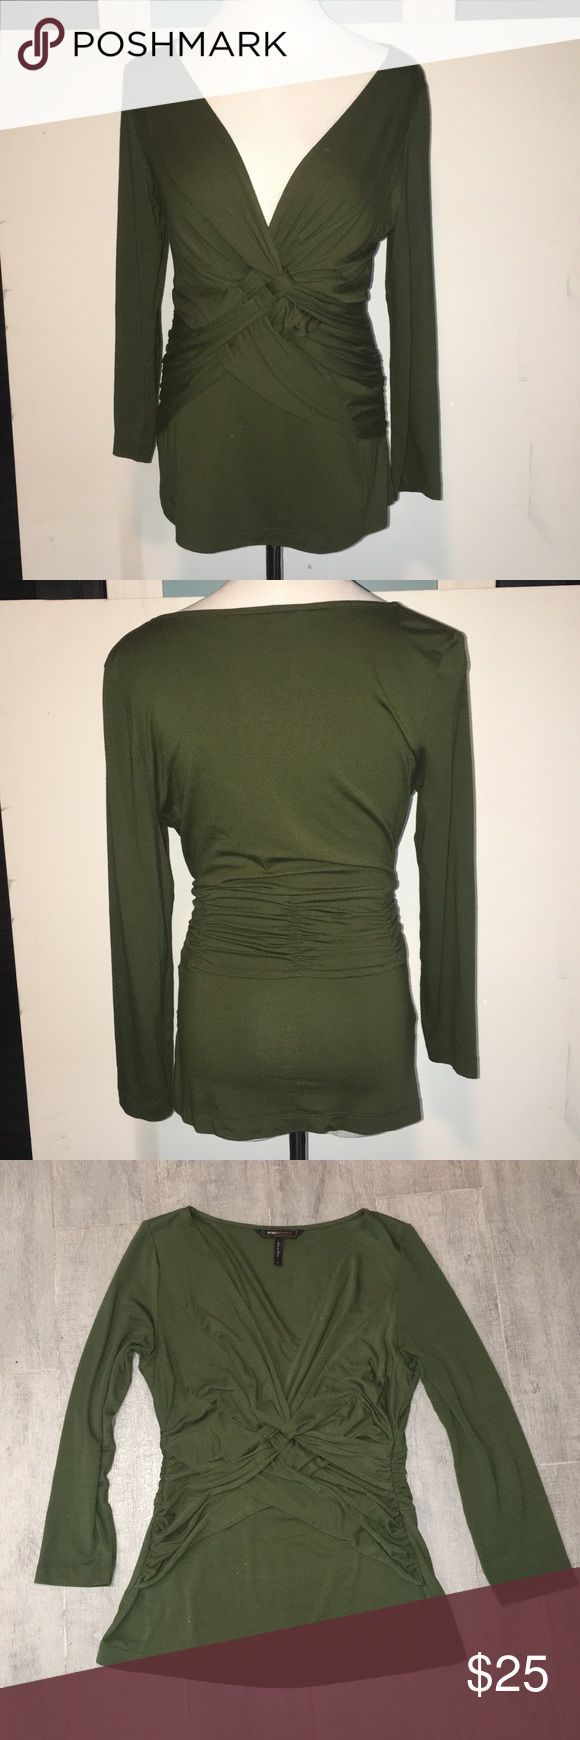 BCBG MAXAZRIA Olive Green Knotted Top Gently used. Three-quarter sleeves. Material: Rayon (95%), Spandex (5%). Machine wash cold. BCBGMaxAzria Tops Blouses